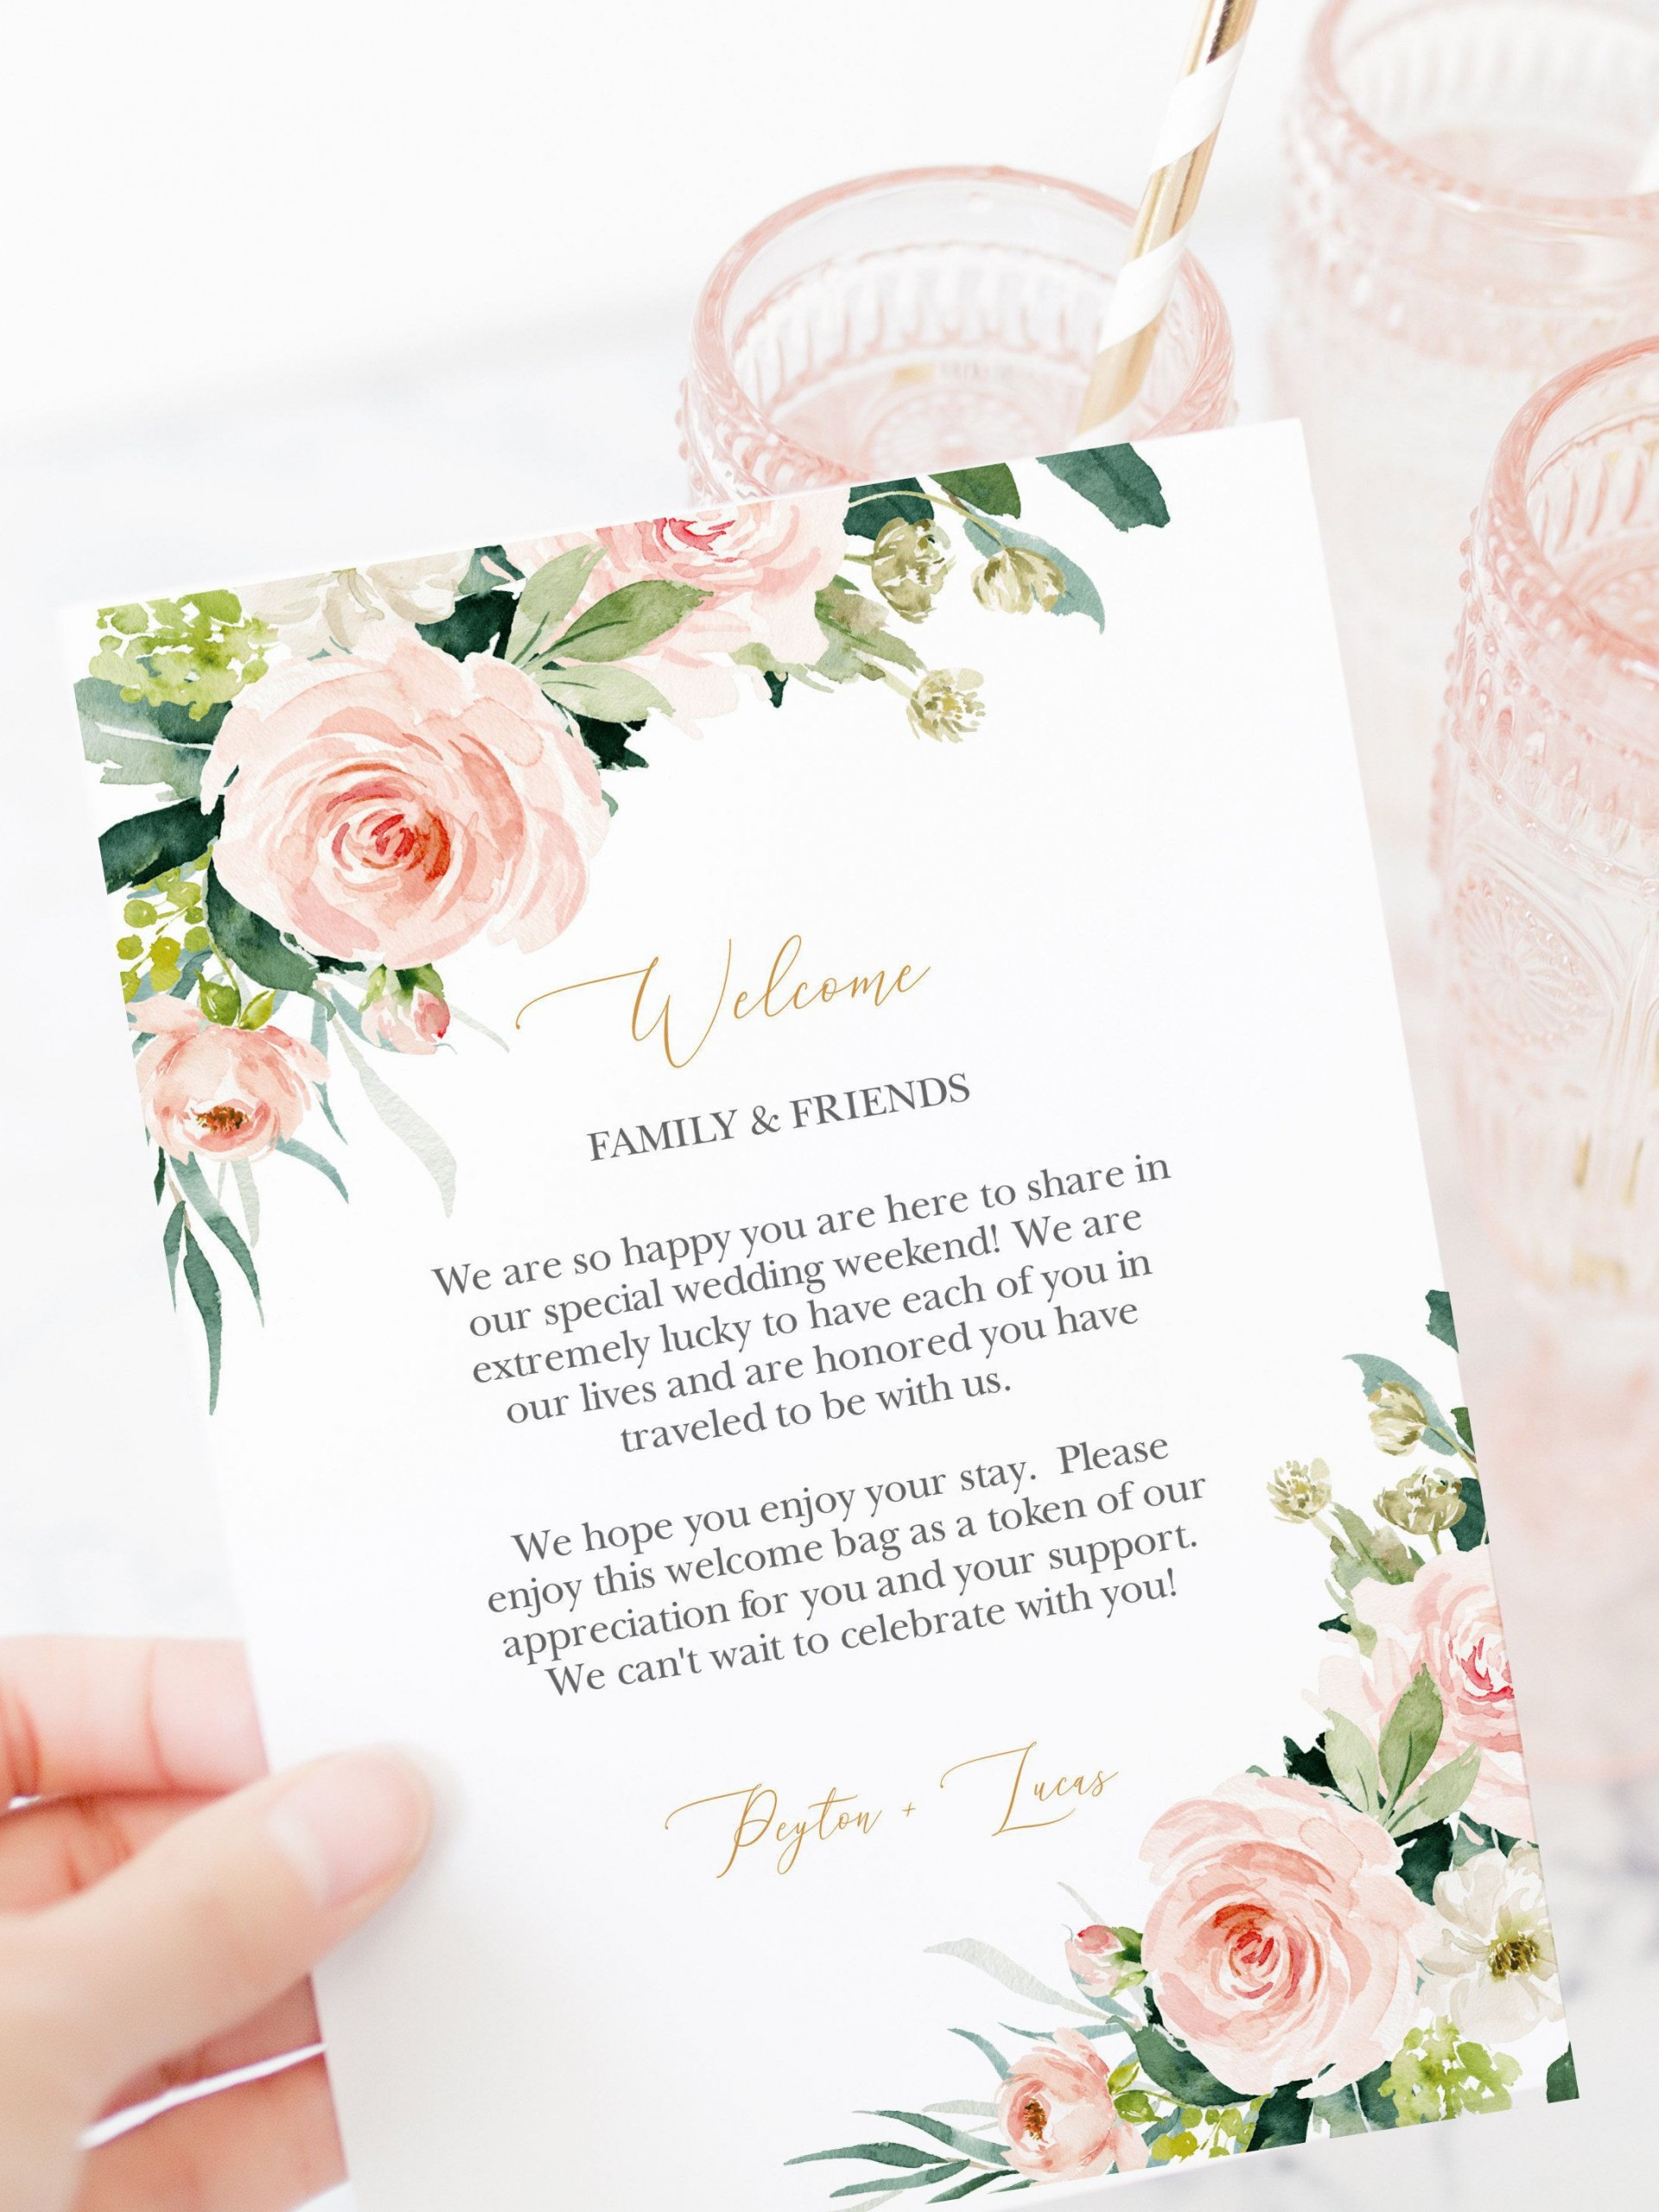 001 Striking Wedding Welcome Letter Template Download Example 1920